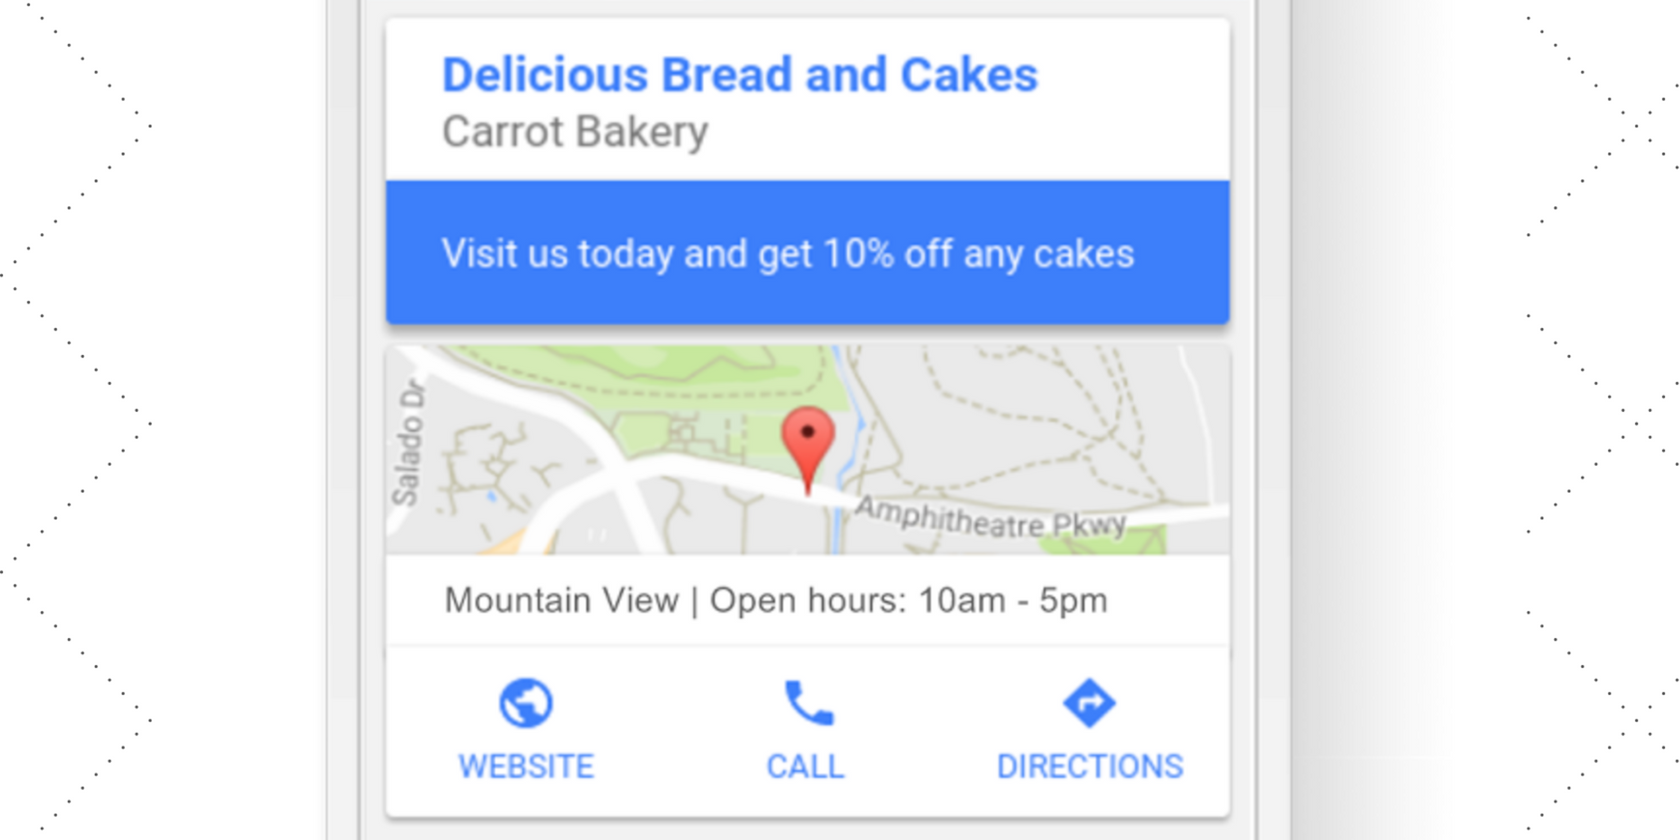 Google Display Ads to Show Location Extensions for Local Businesses by @MattGSouthern